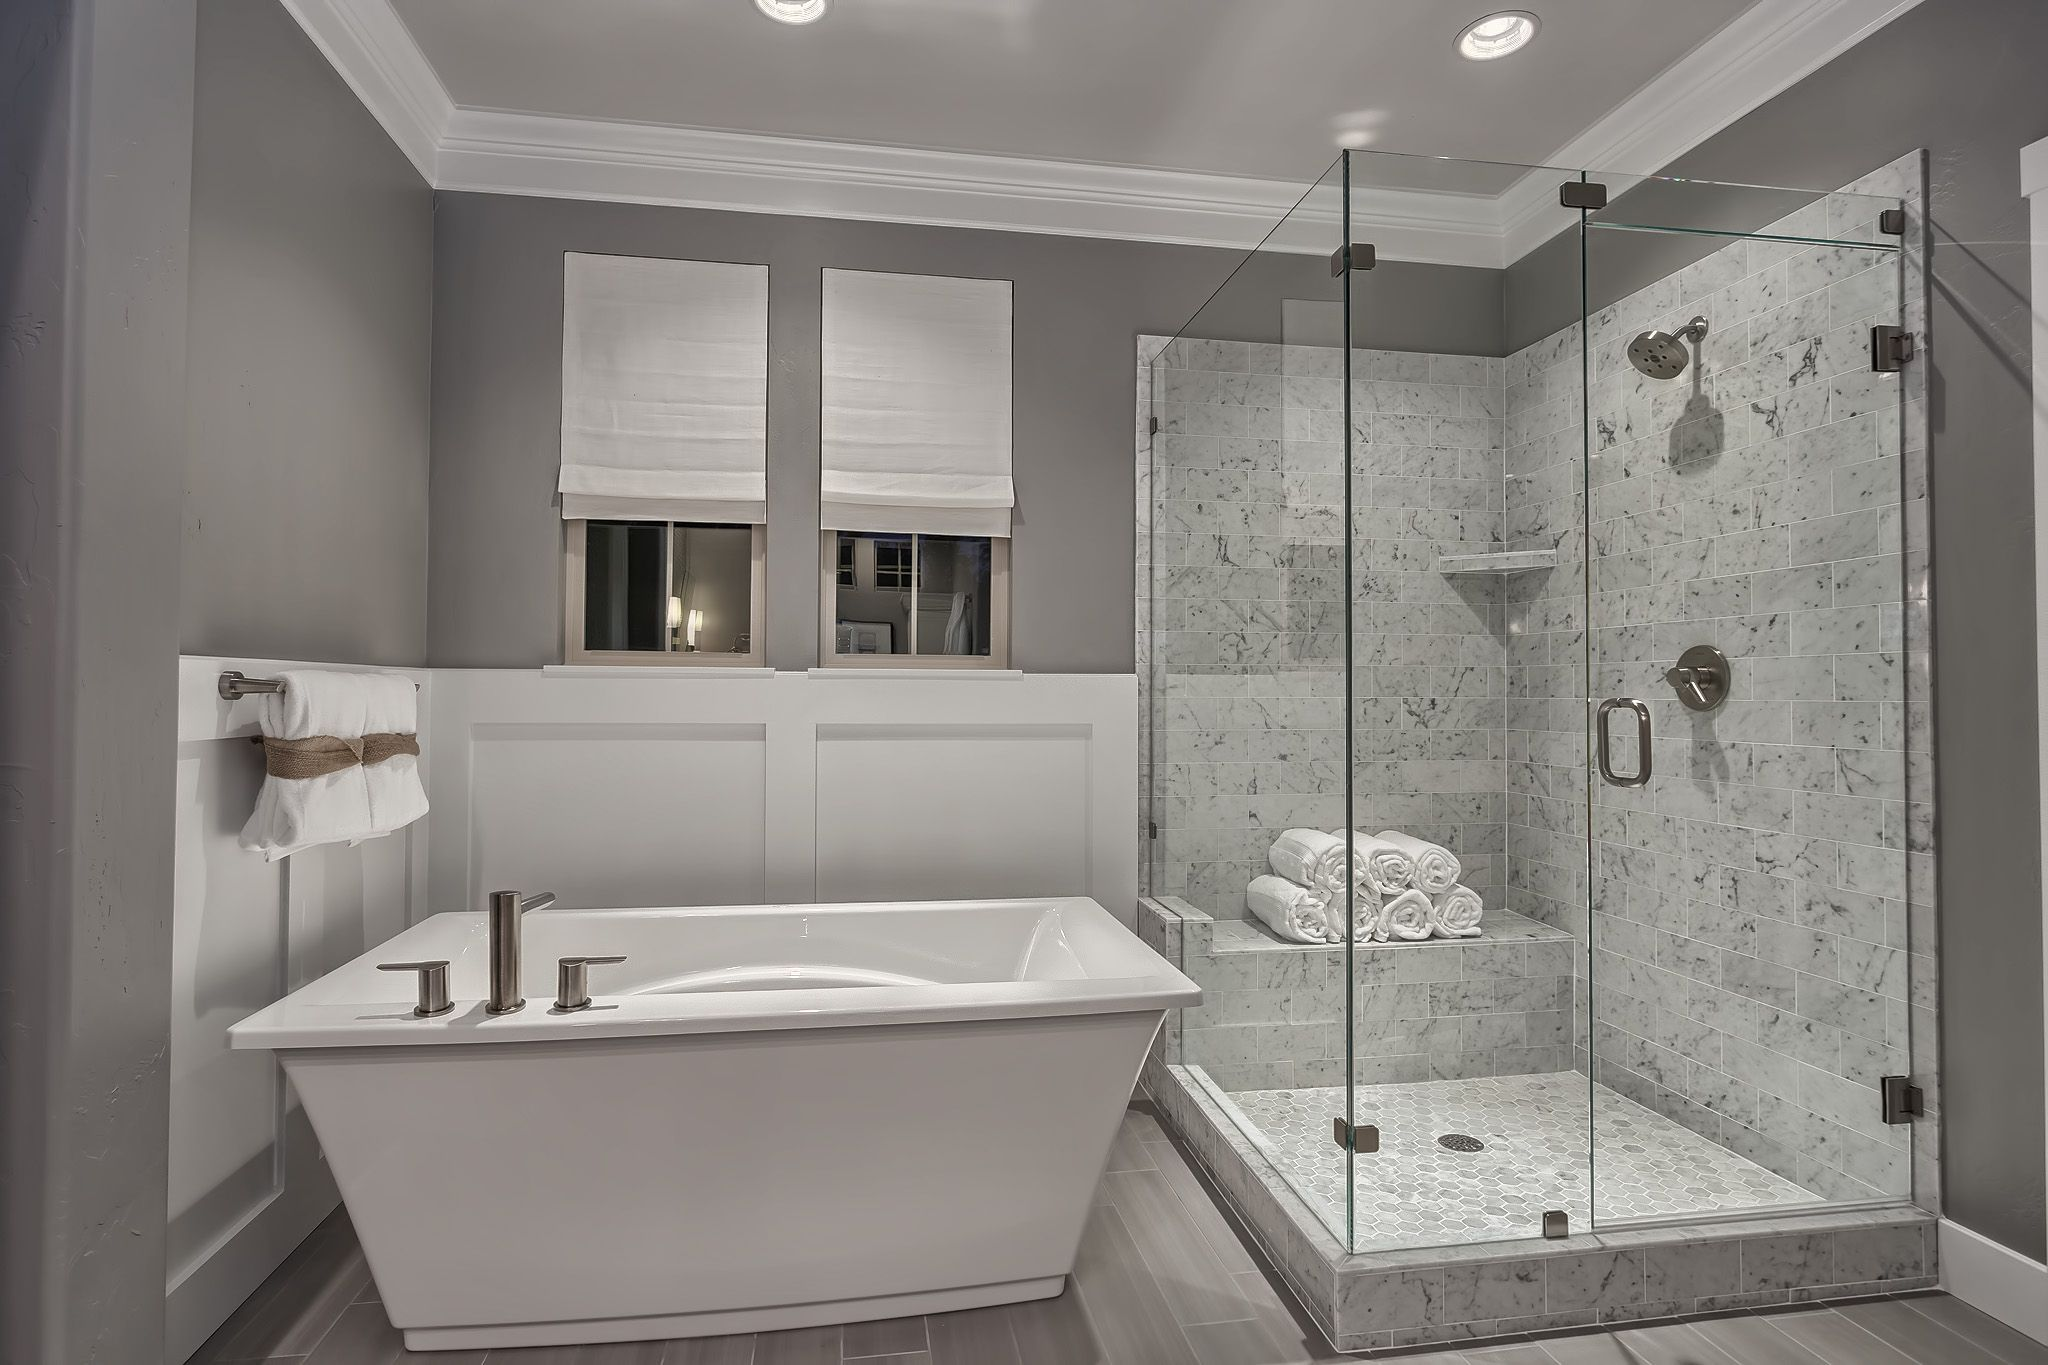 Free Standing Tub With Wainscoting Accentuate The Stone Surround